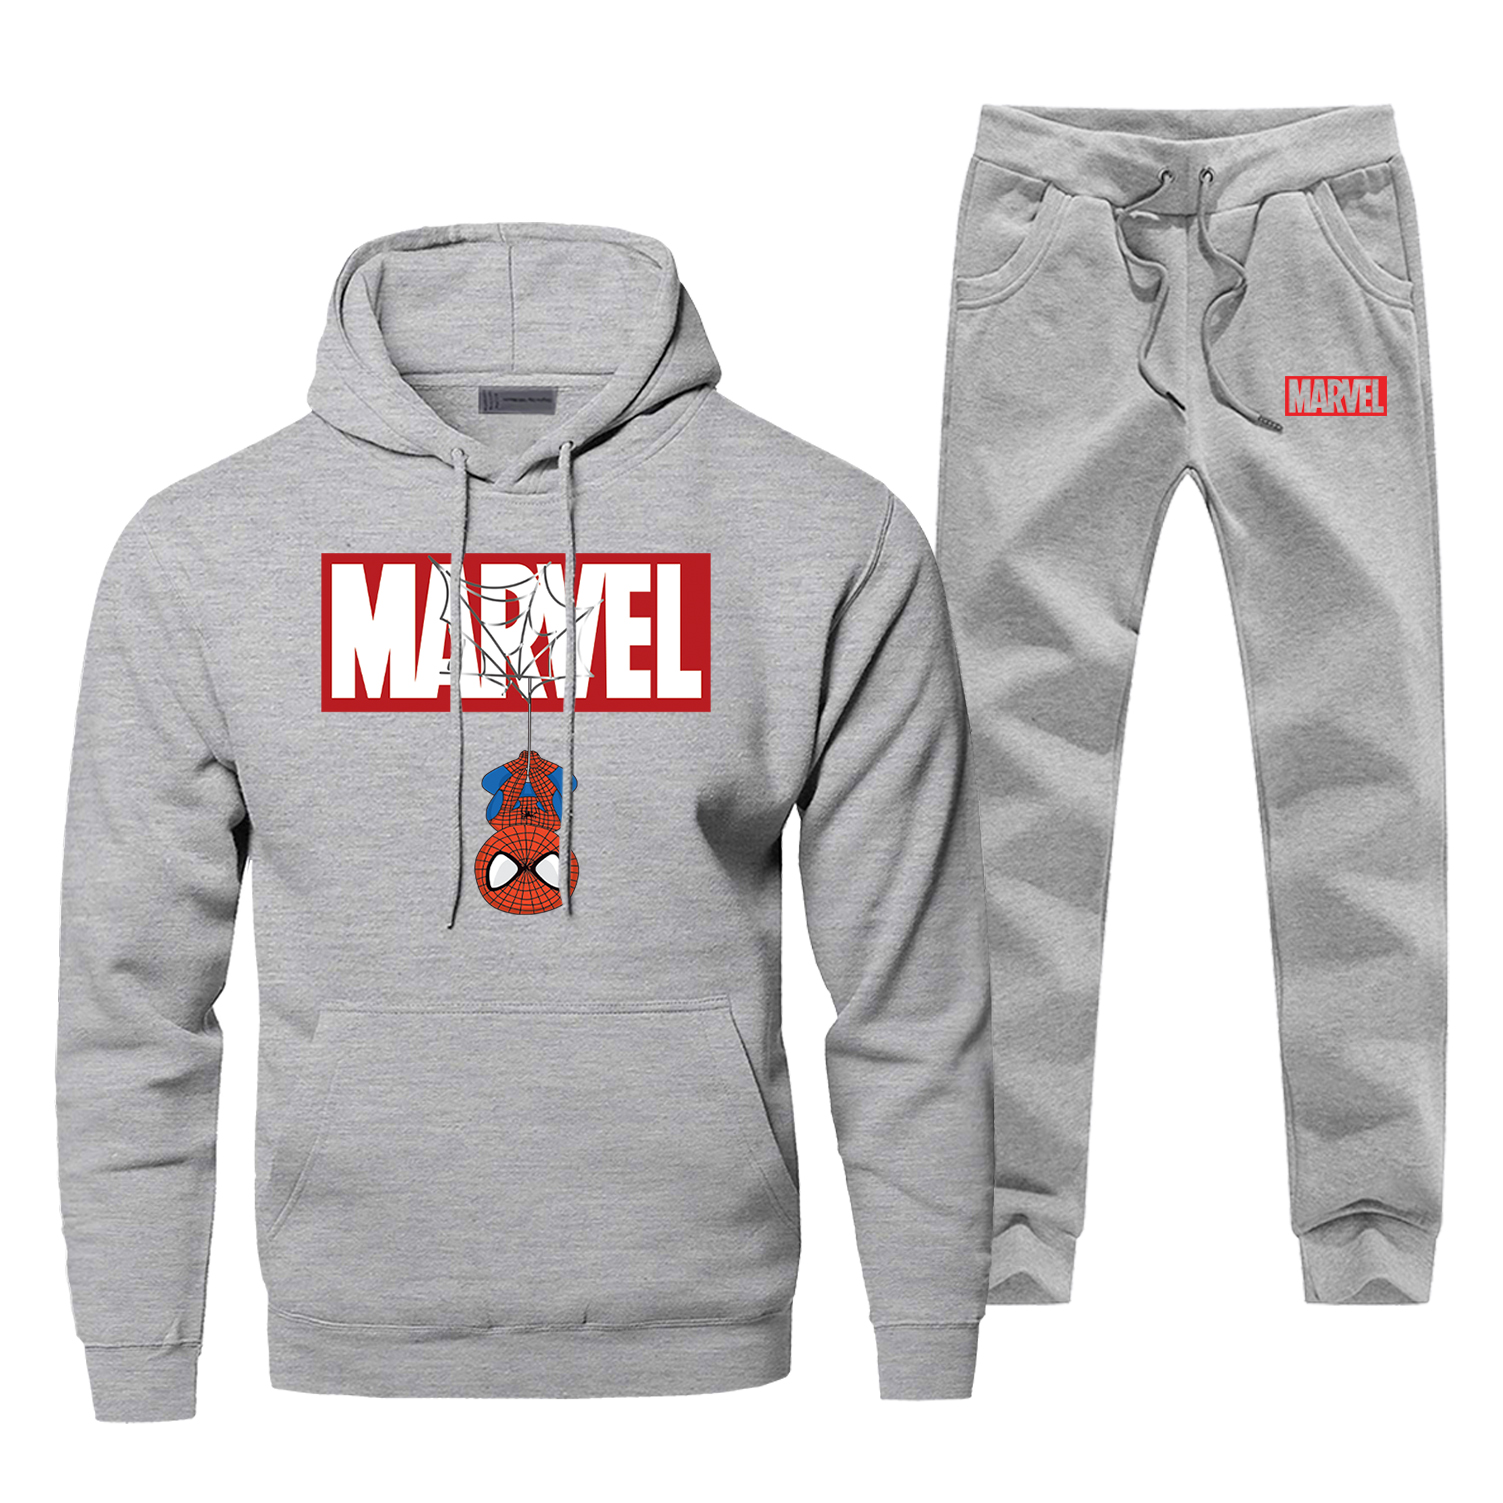 Hoodies Pants Sets Men Spider Man Superhero Track Suit Peter Parker Sweatshirt Sweatpants Sportswear Autumn Sports Sportswear